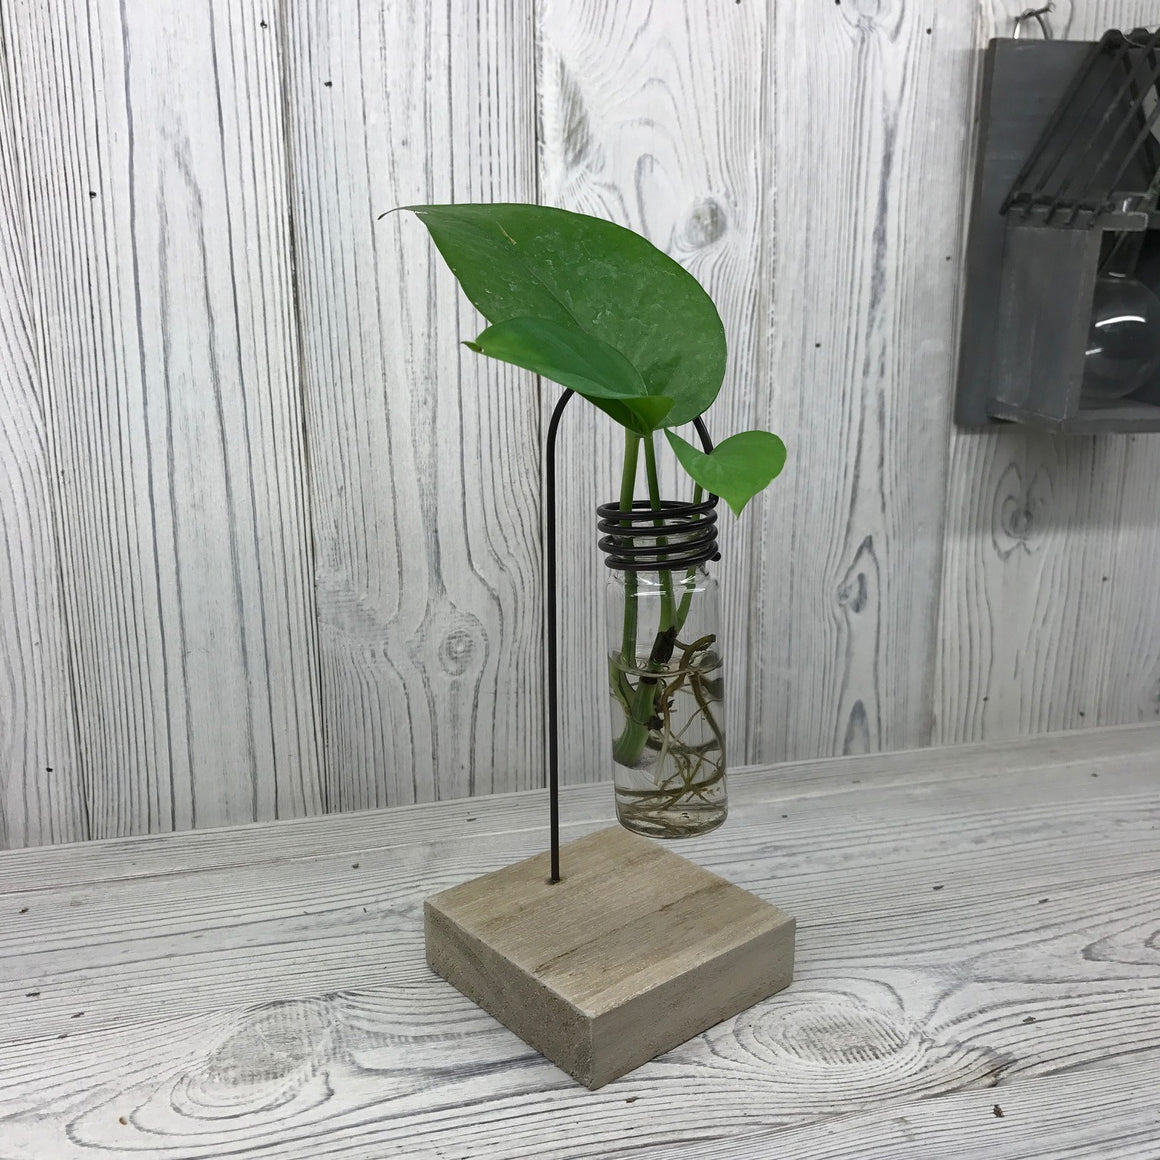 Hydroponic Home Decor - One Lab Pot Stand